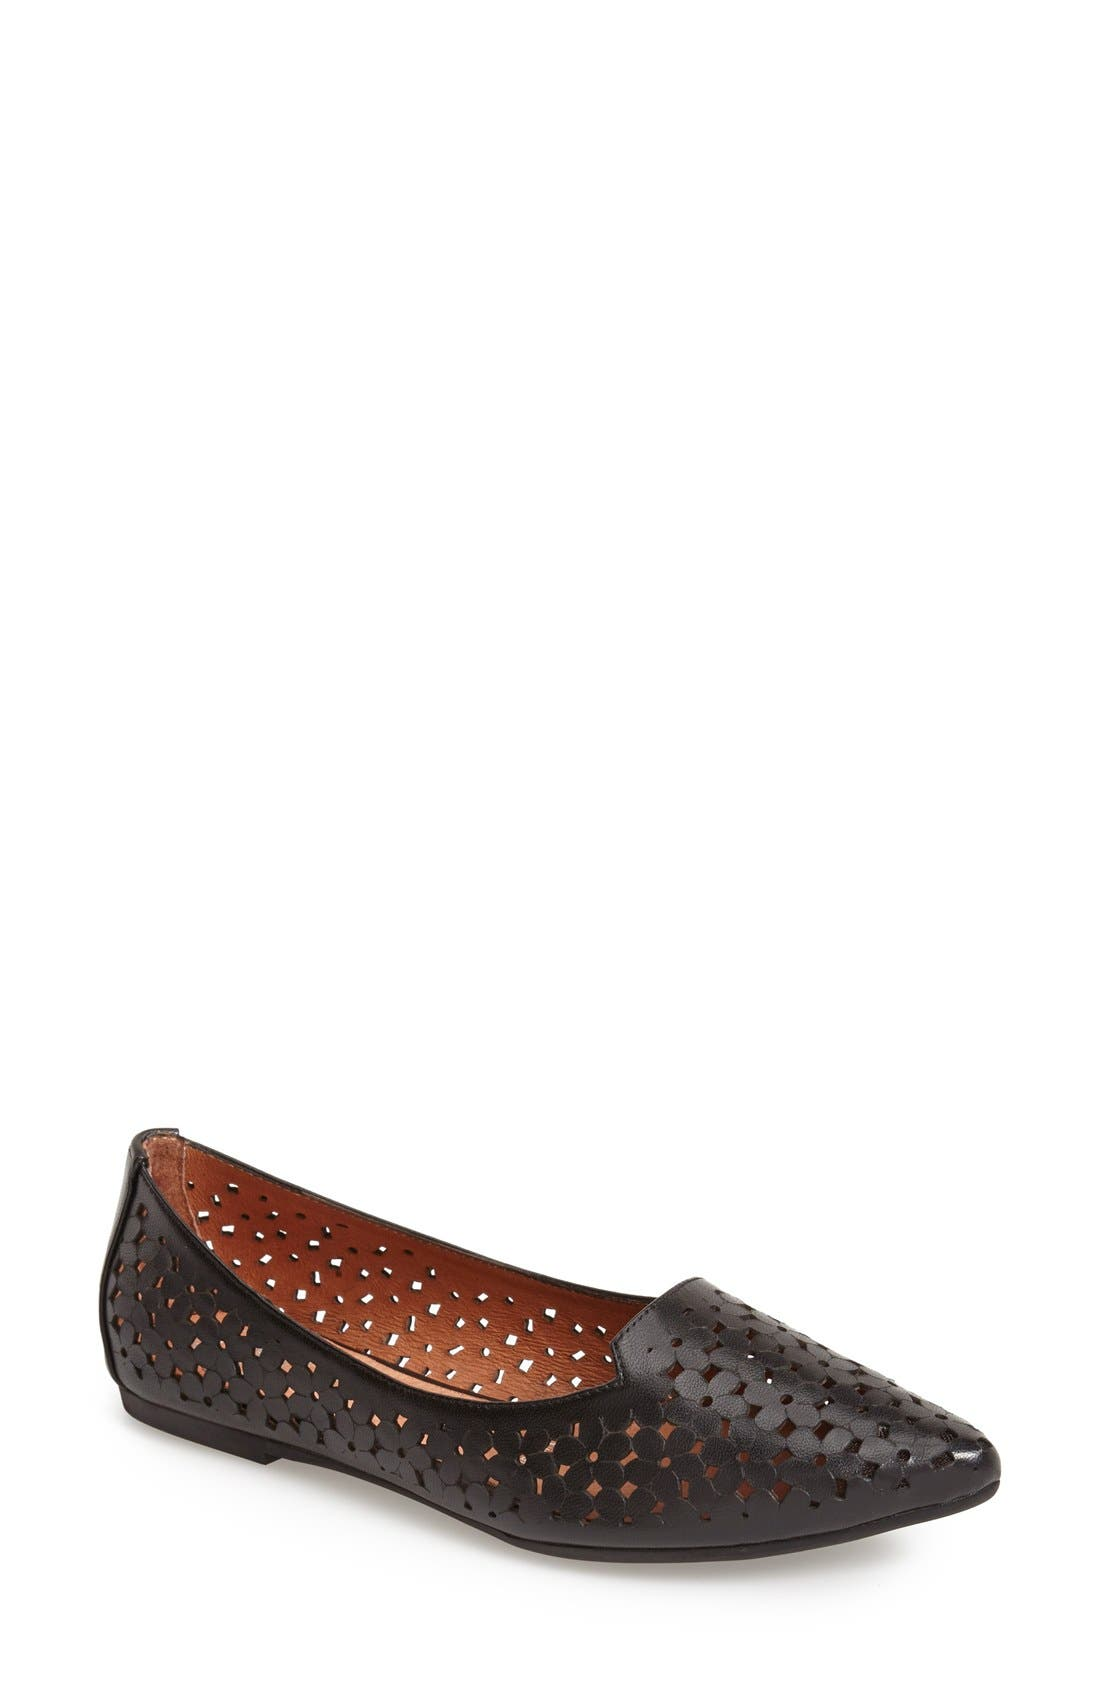 Alternate Image 1 Selected - Jeffrey Campbell 'Sonnet' Flat (Women)